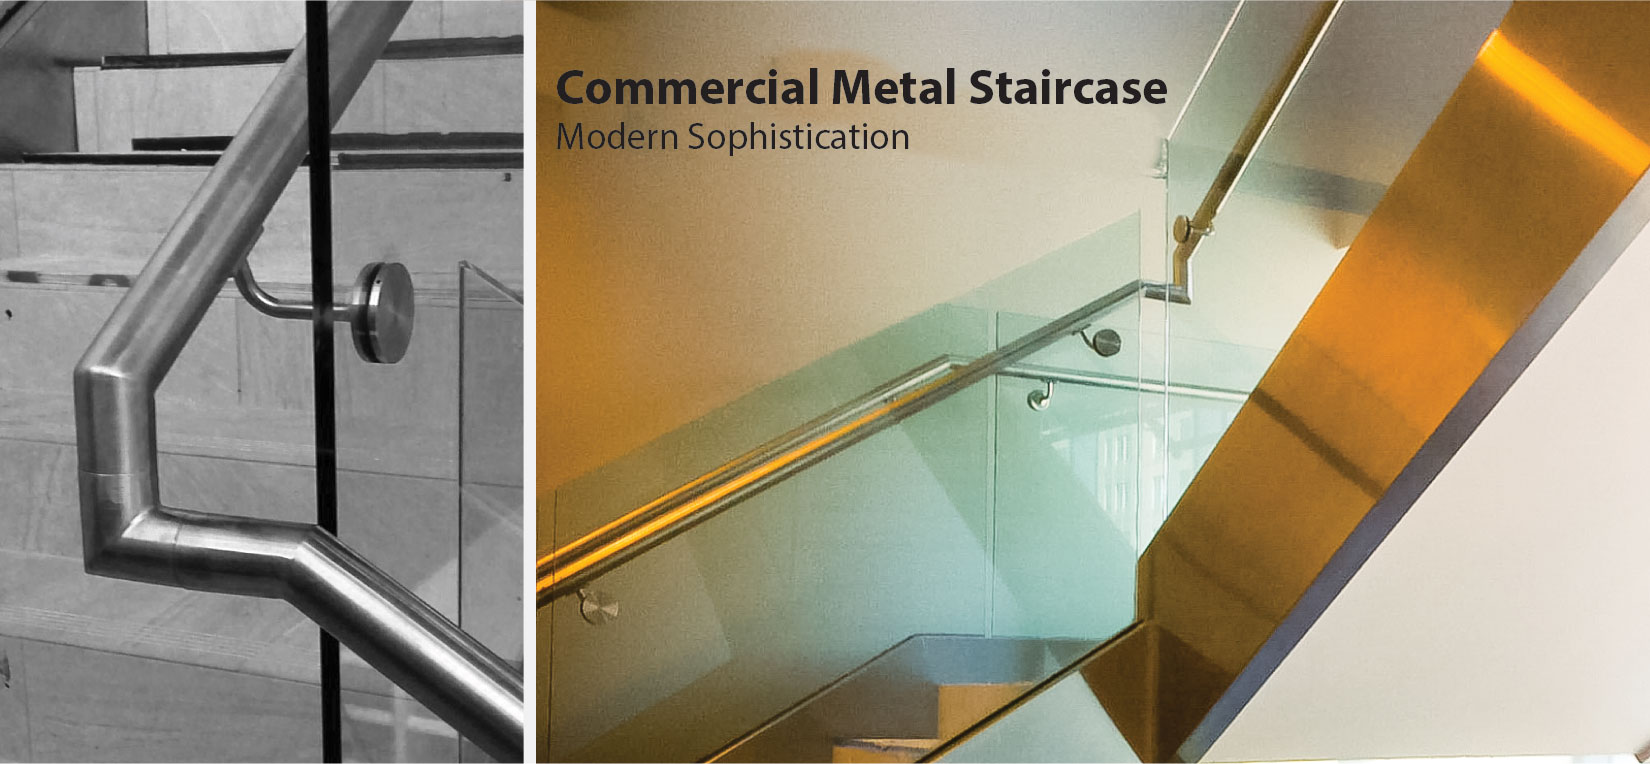 Commercial Metal Staircase